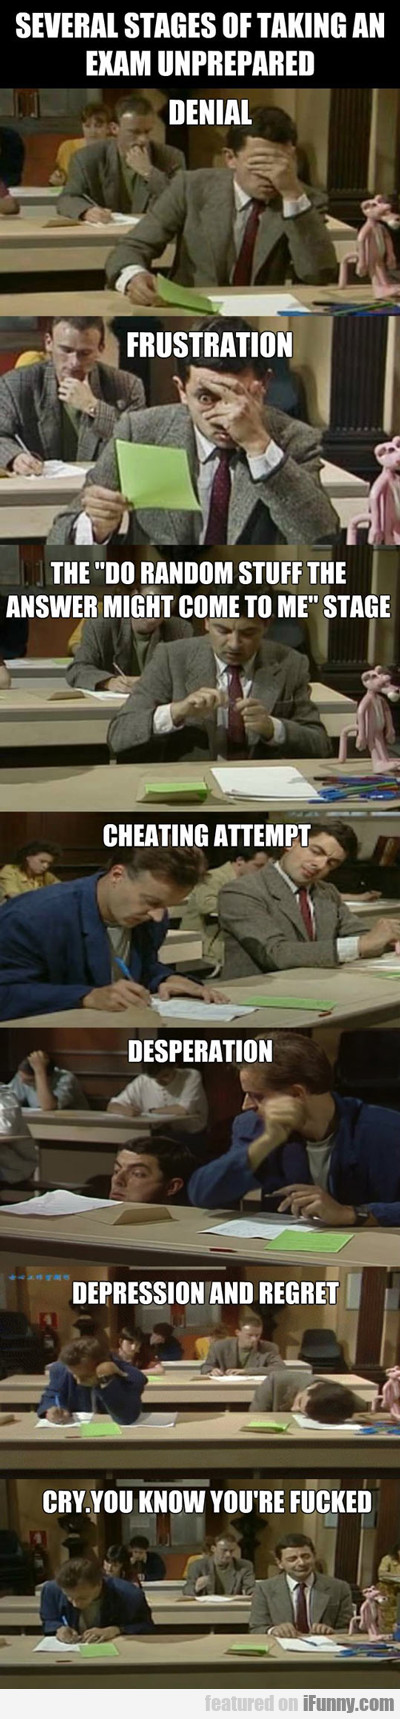 several stages of taking an exam...